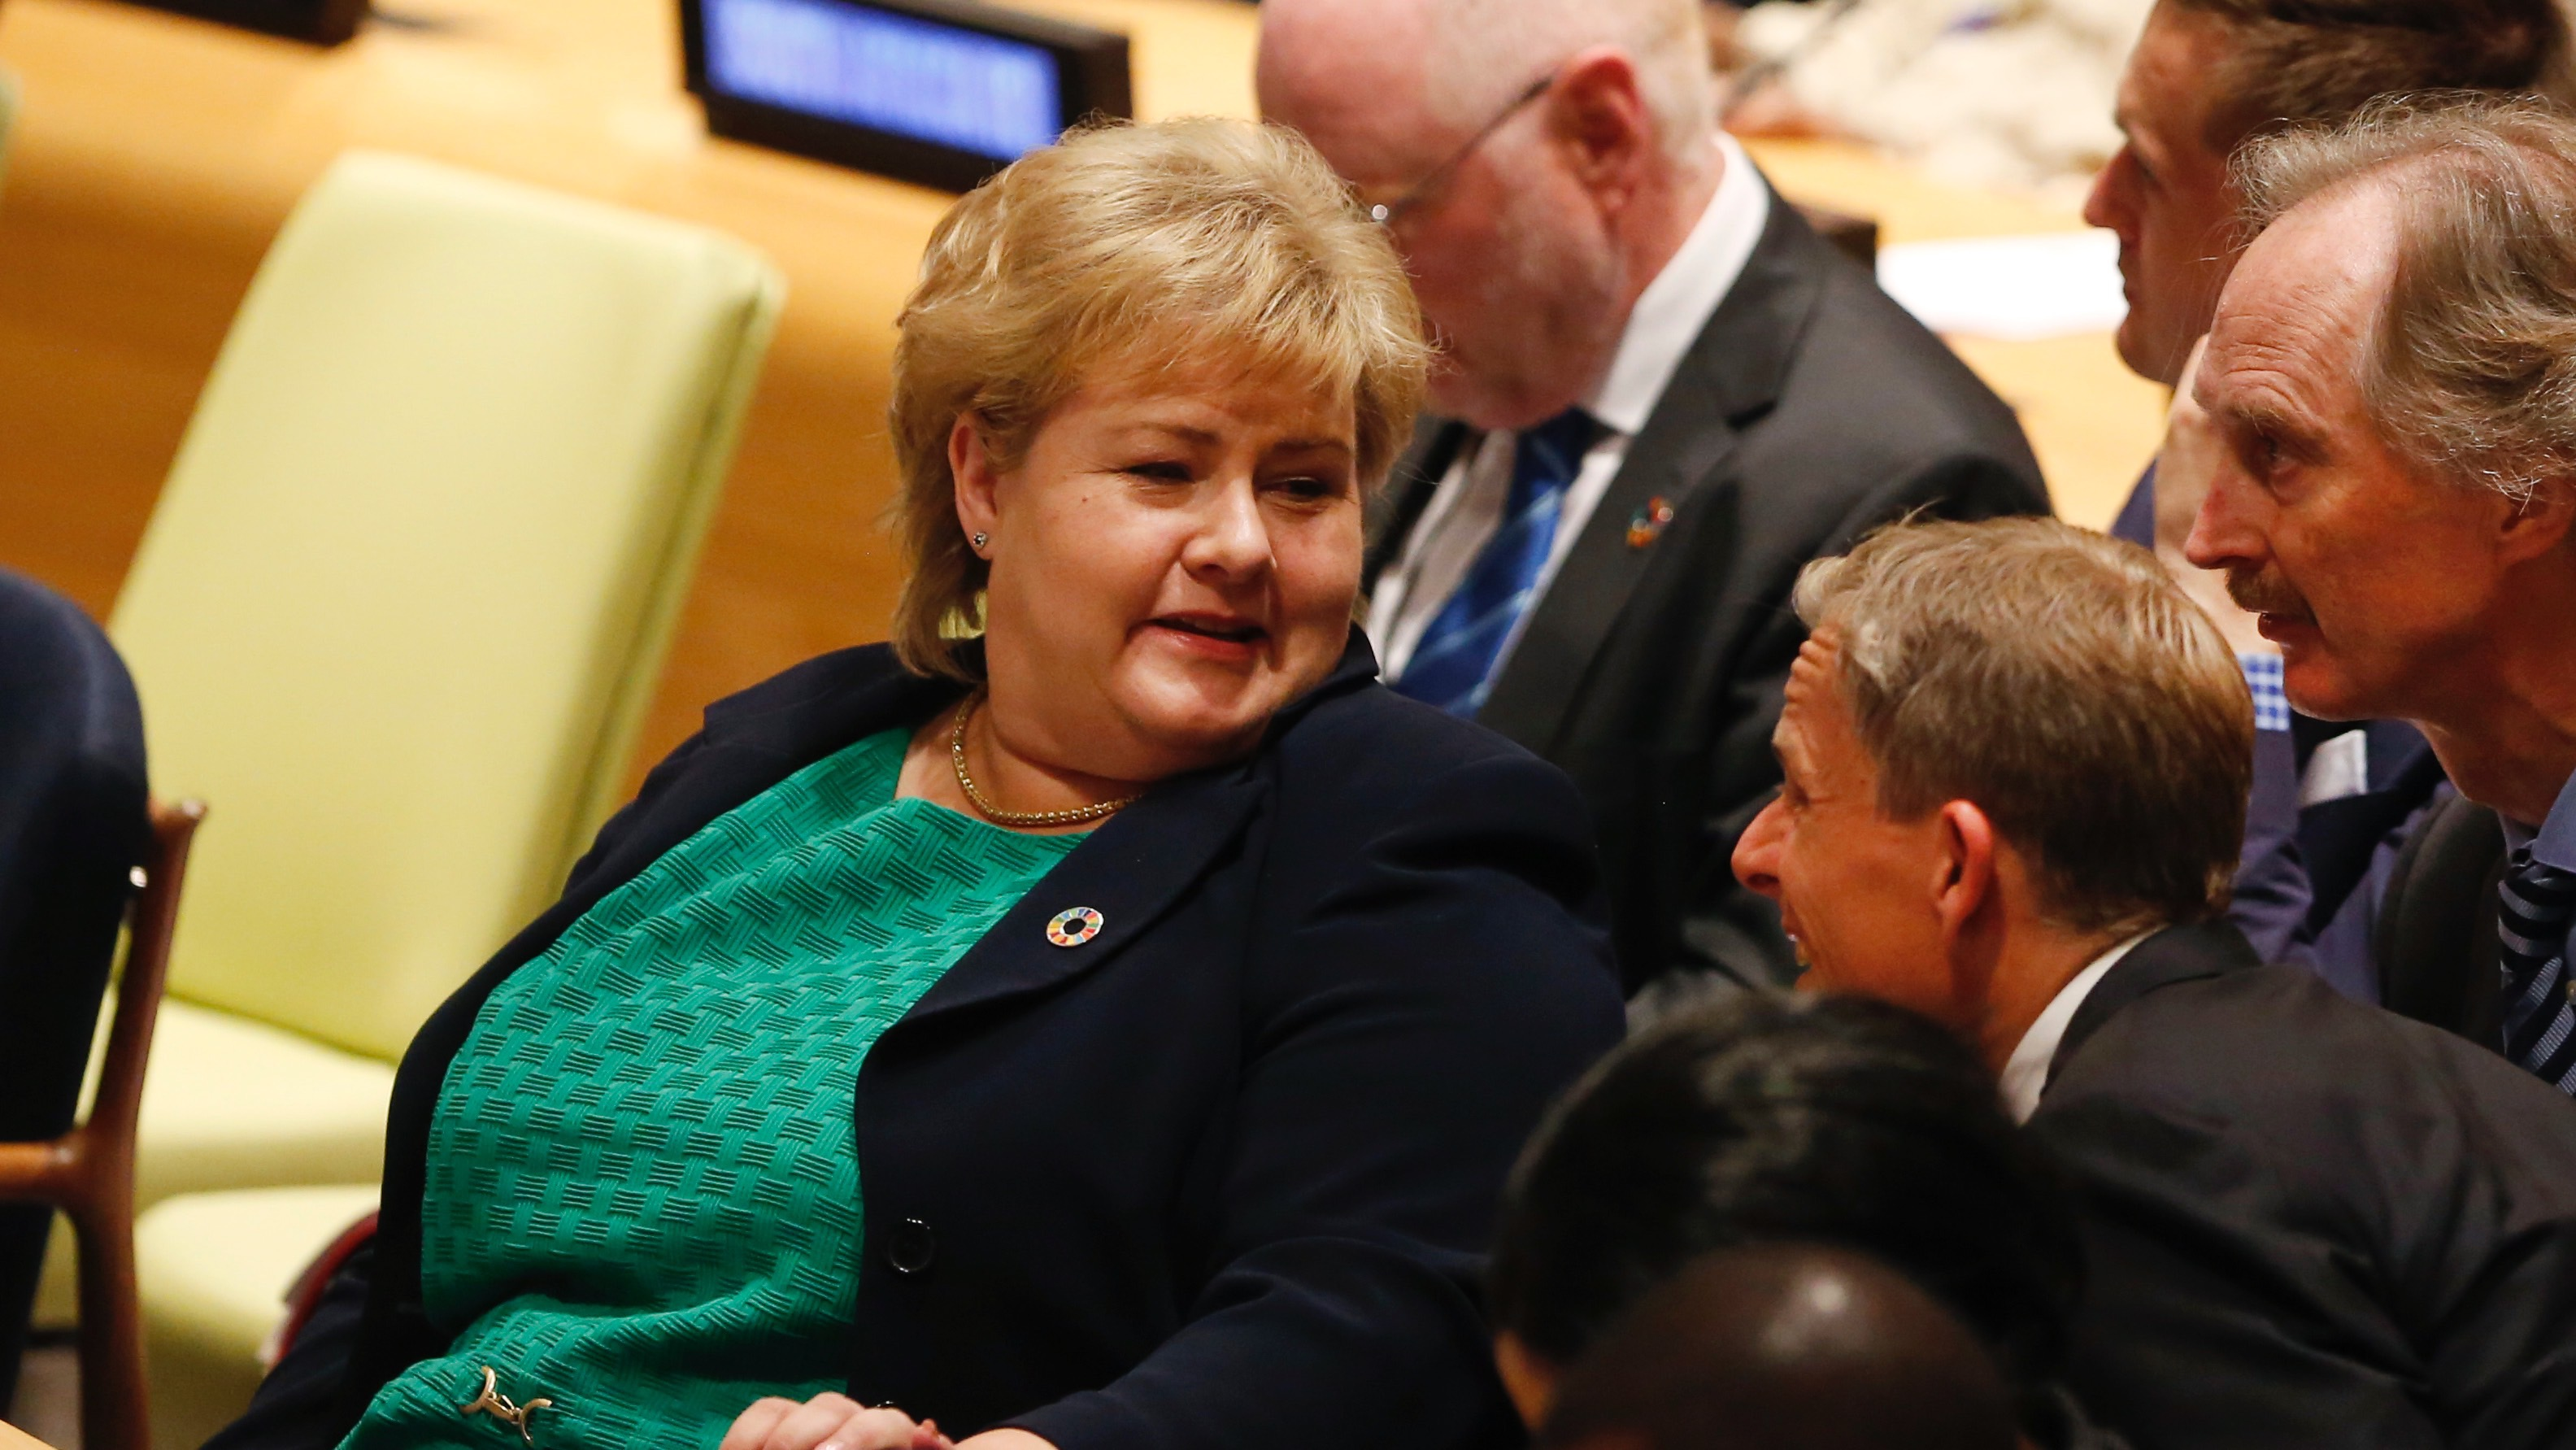 Prime Minister Erna Solberg, left, attends a meeting on sustainable development Monday, July 18, 2016, at United Nations headquarters. (AP Photo/Mark Lennihan)